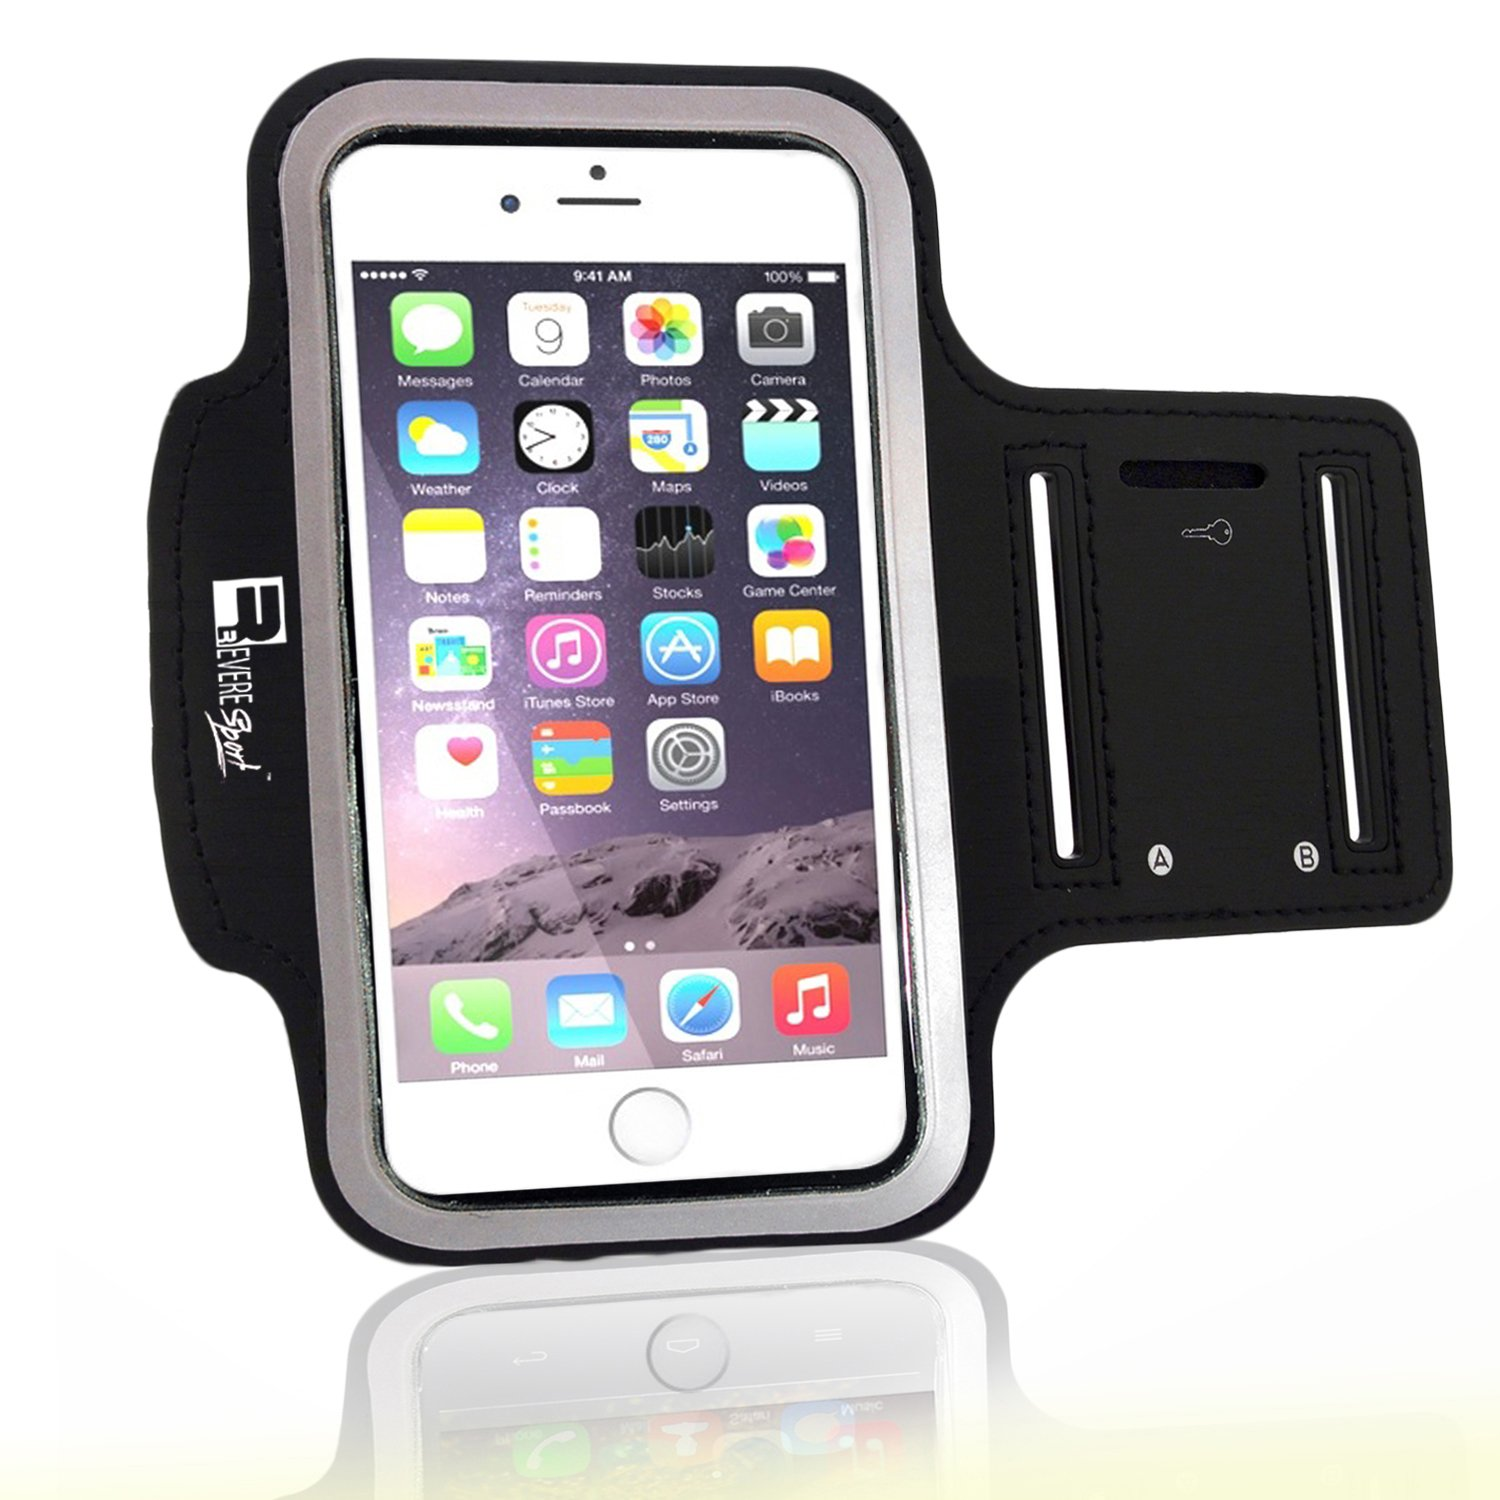 Premium iPhone 7 Plus/iPhone 8 Plus Running Armband with Fingerprint ID Access. Sports Phone Arm Case Holder for Jogging, Gym Workouts & Exercise by Revere Sport